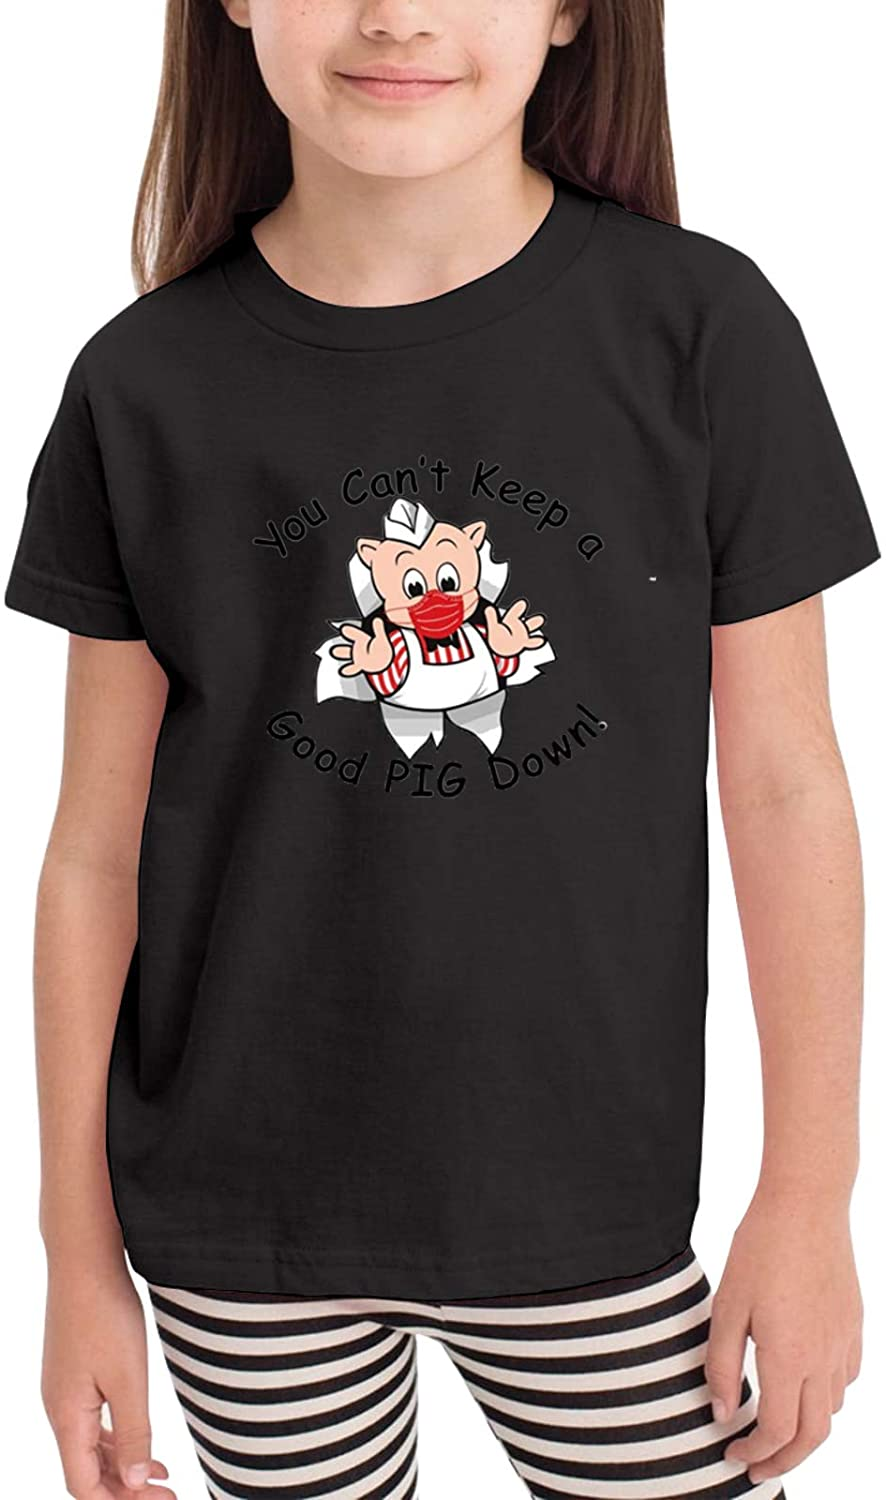 Ramivox Piggly -Wiggly Toddler/Baby Round Neck Short Sleeve T-Shirt (for Children Aged 2-6 Years) Black